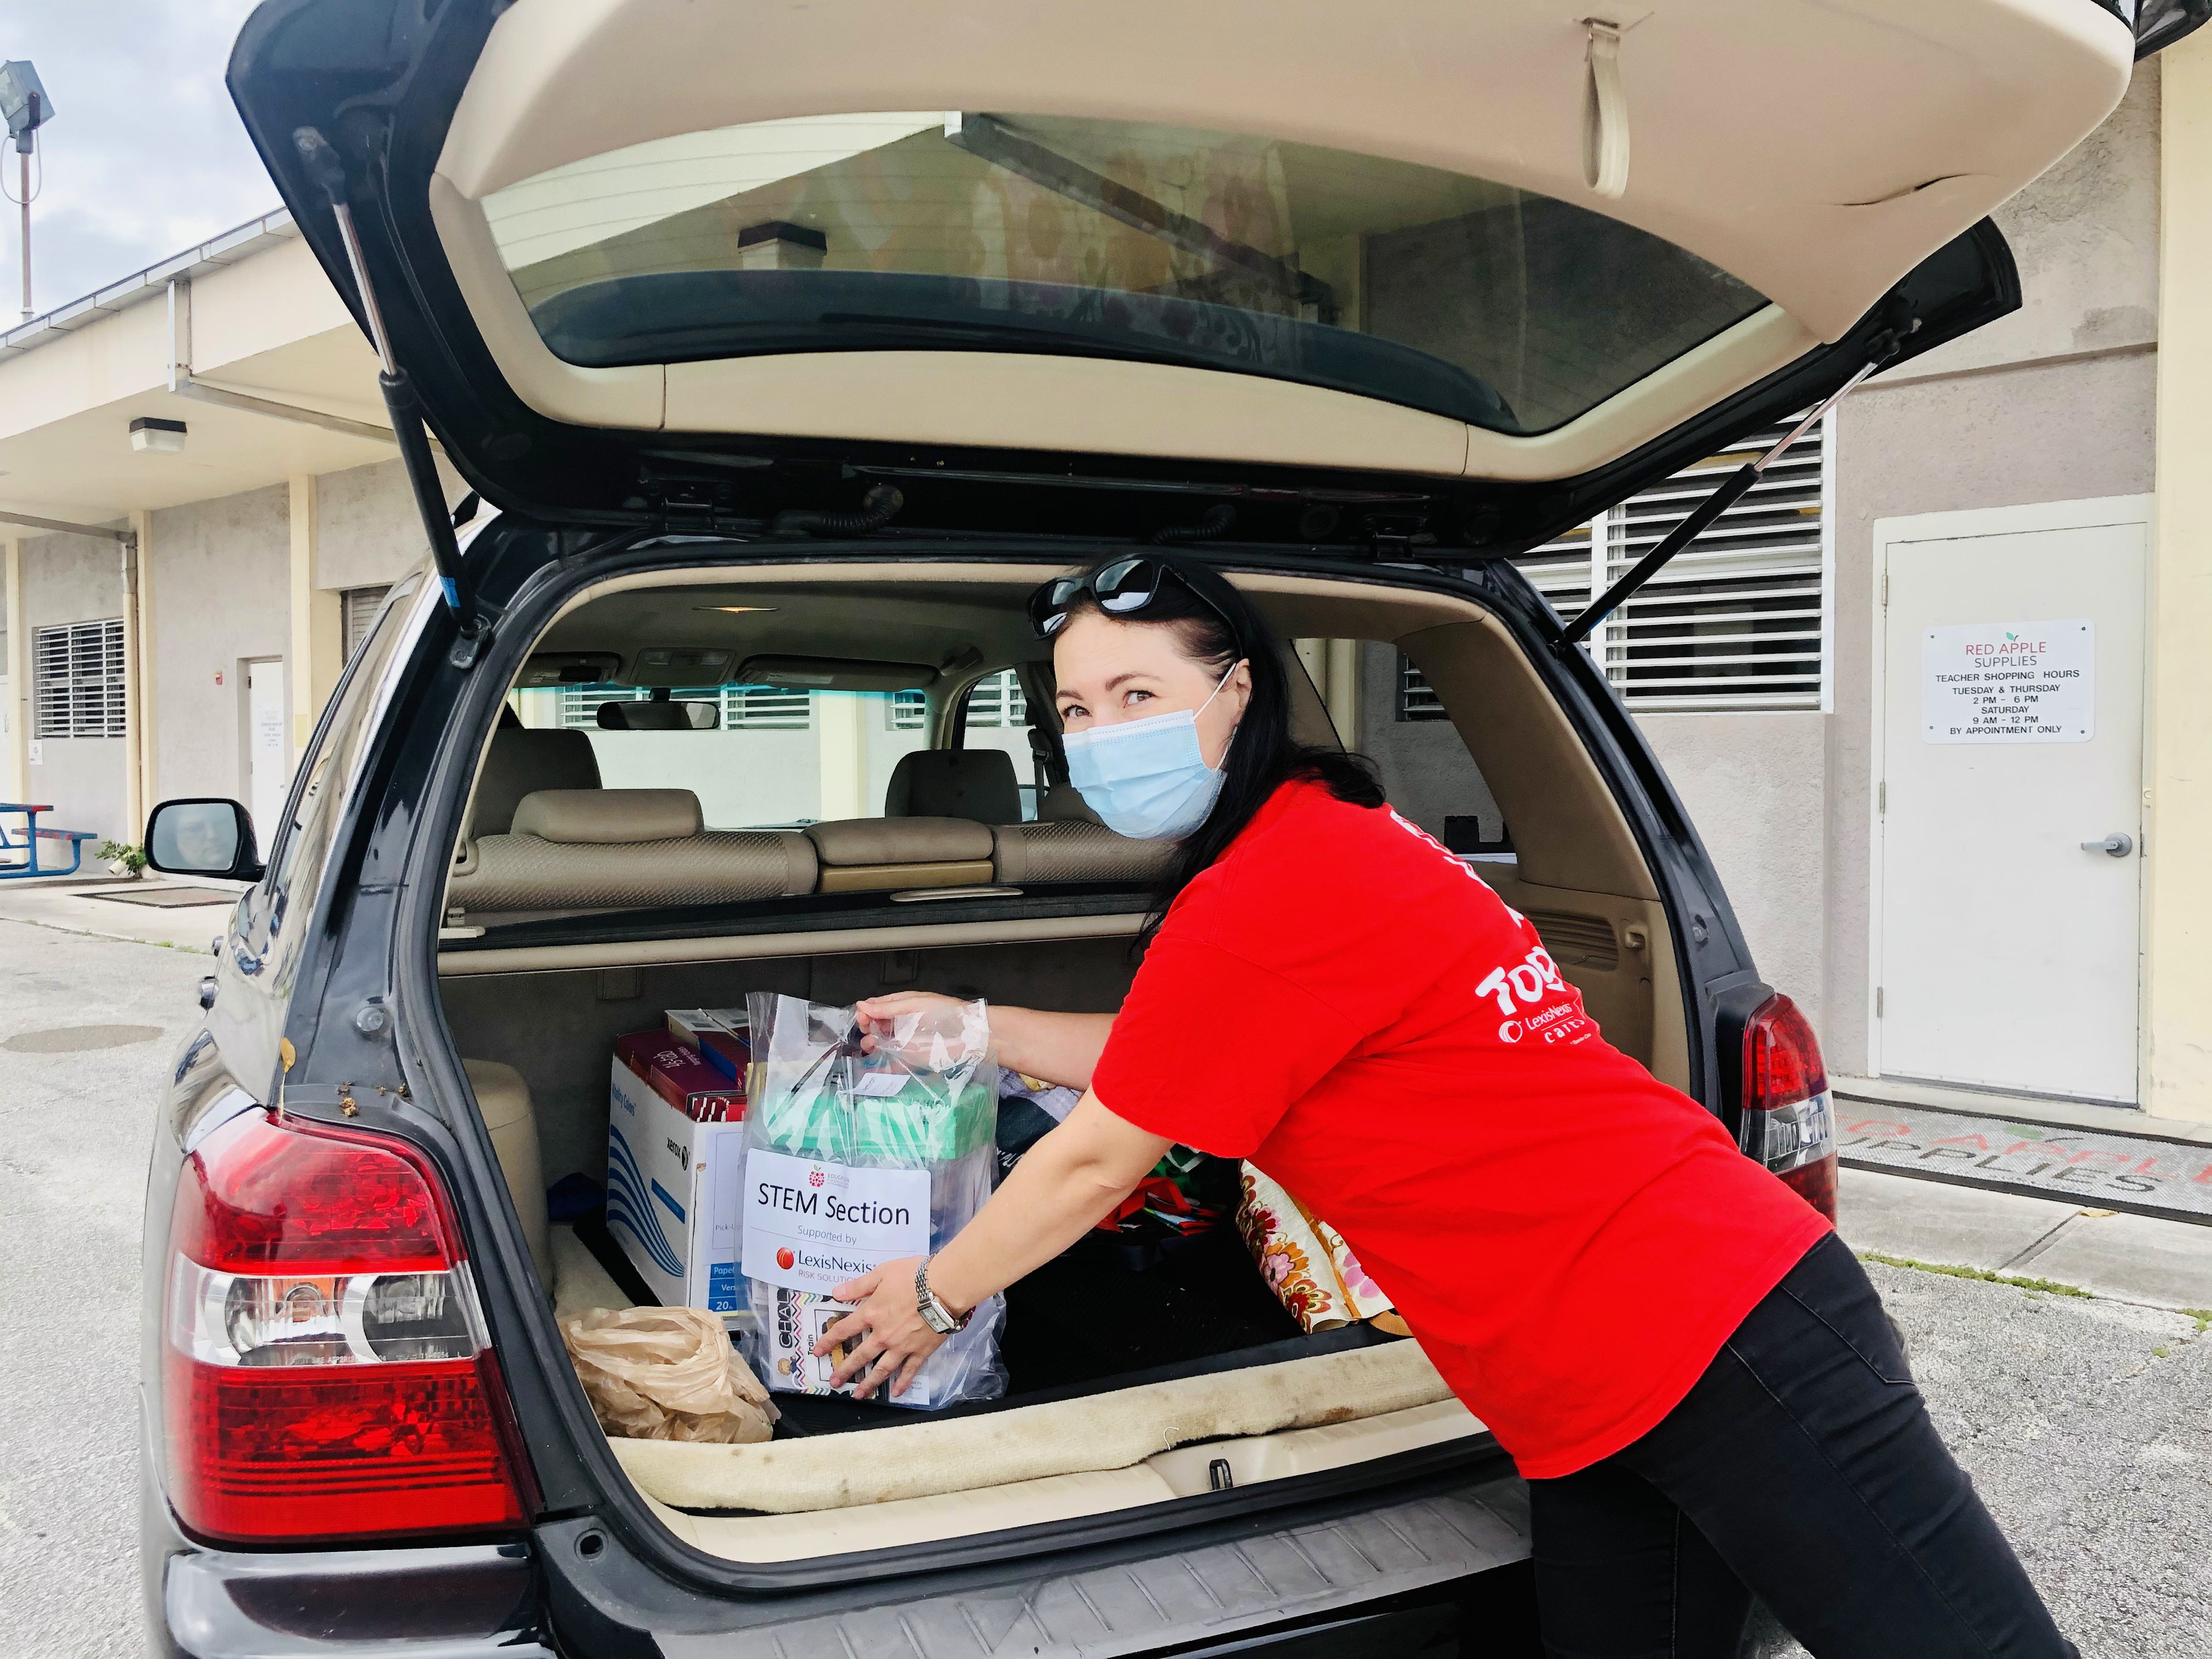 LexisNexis Risk Solutions volunteer places STEM kit in teacher's car